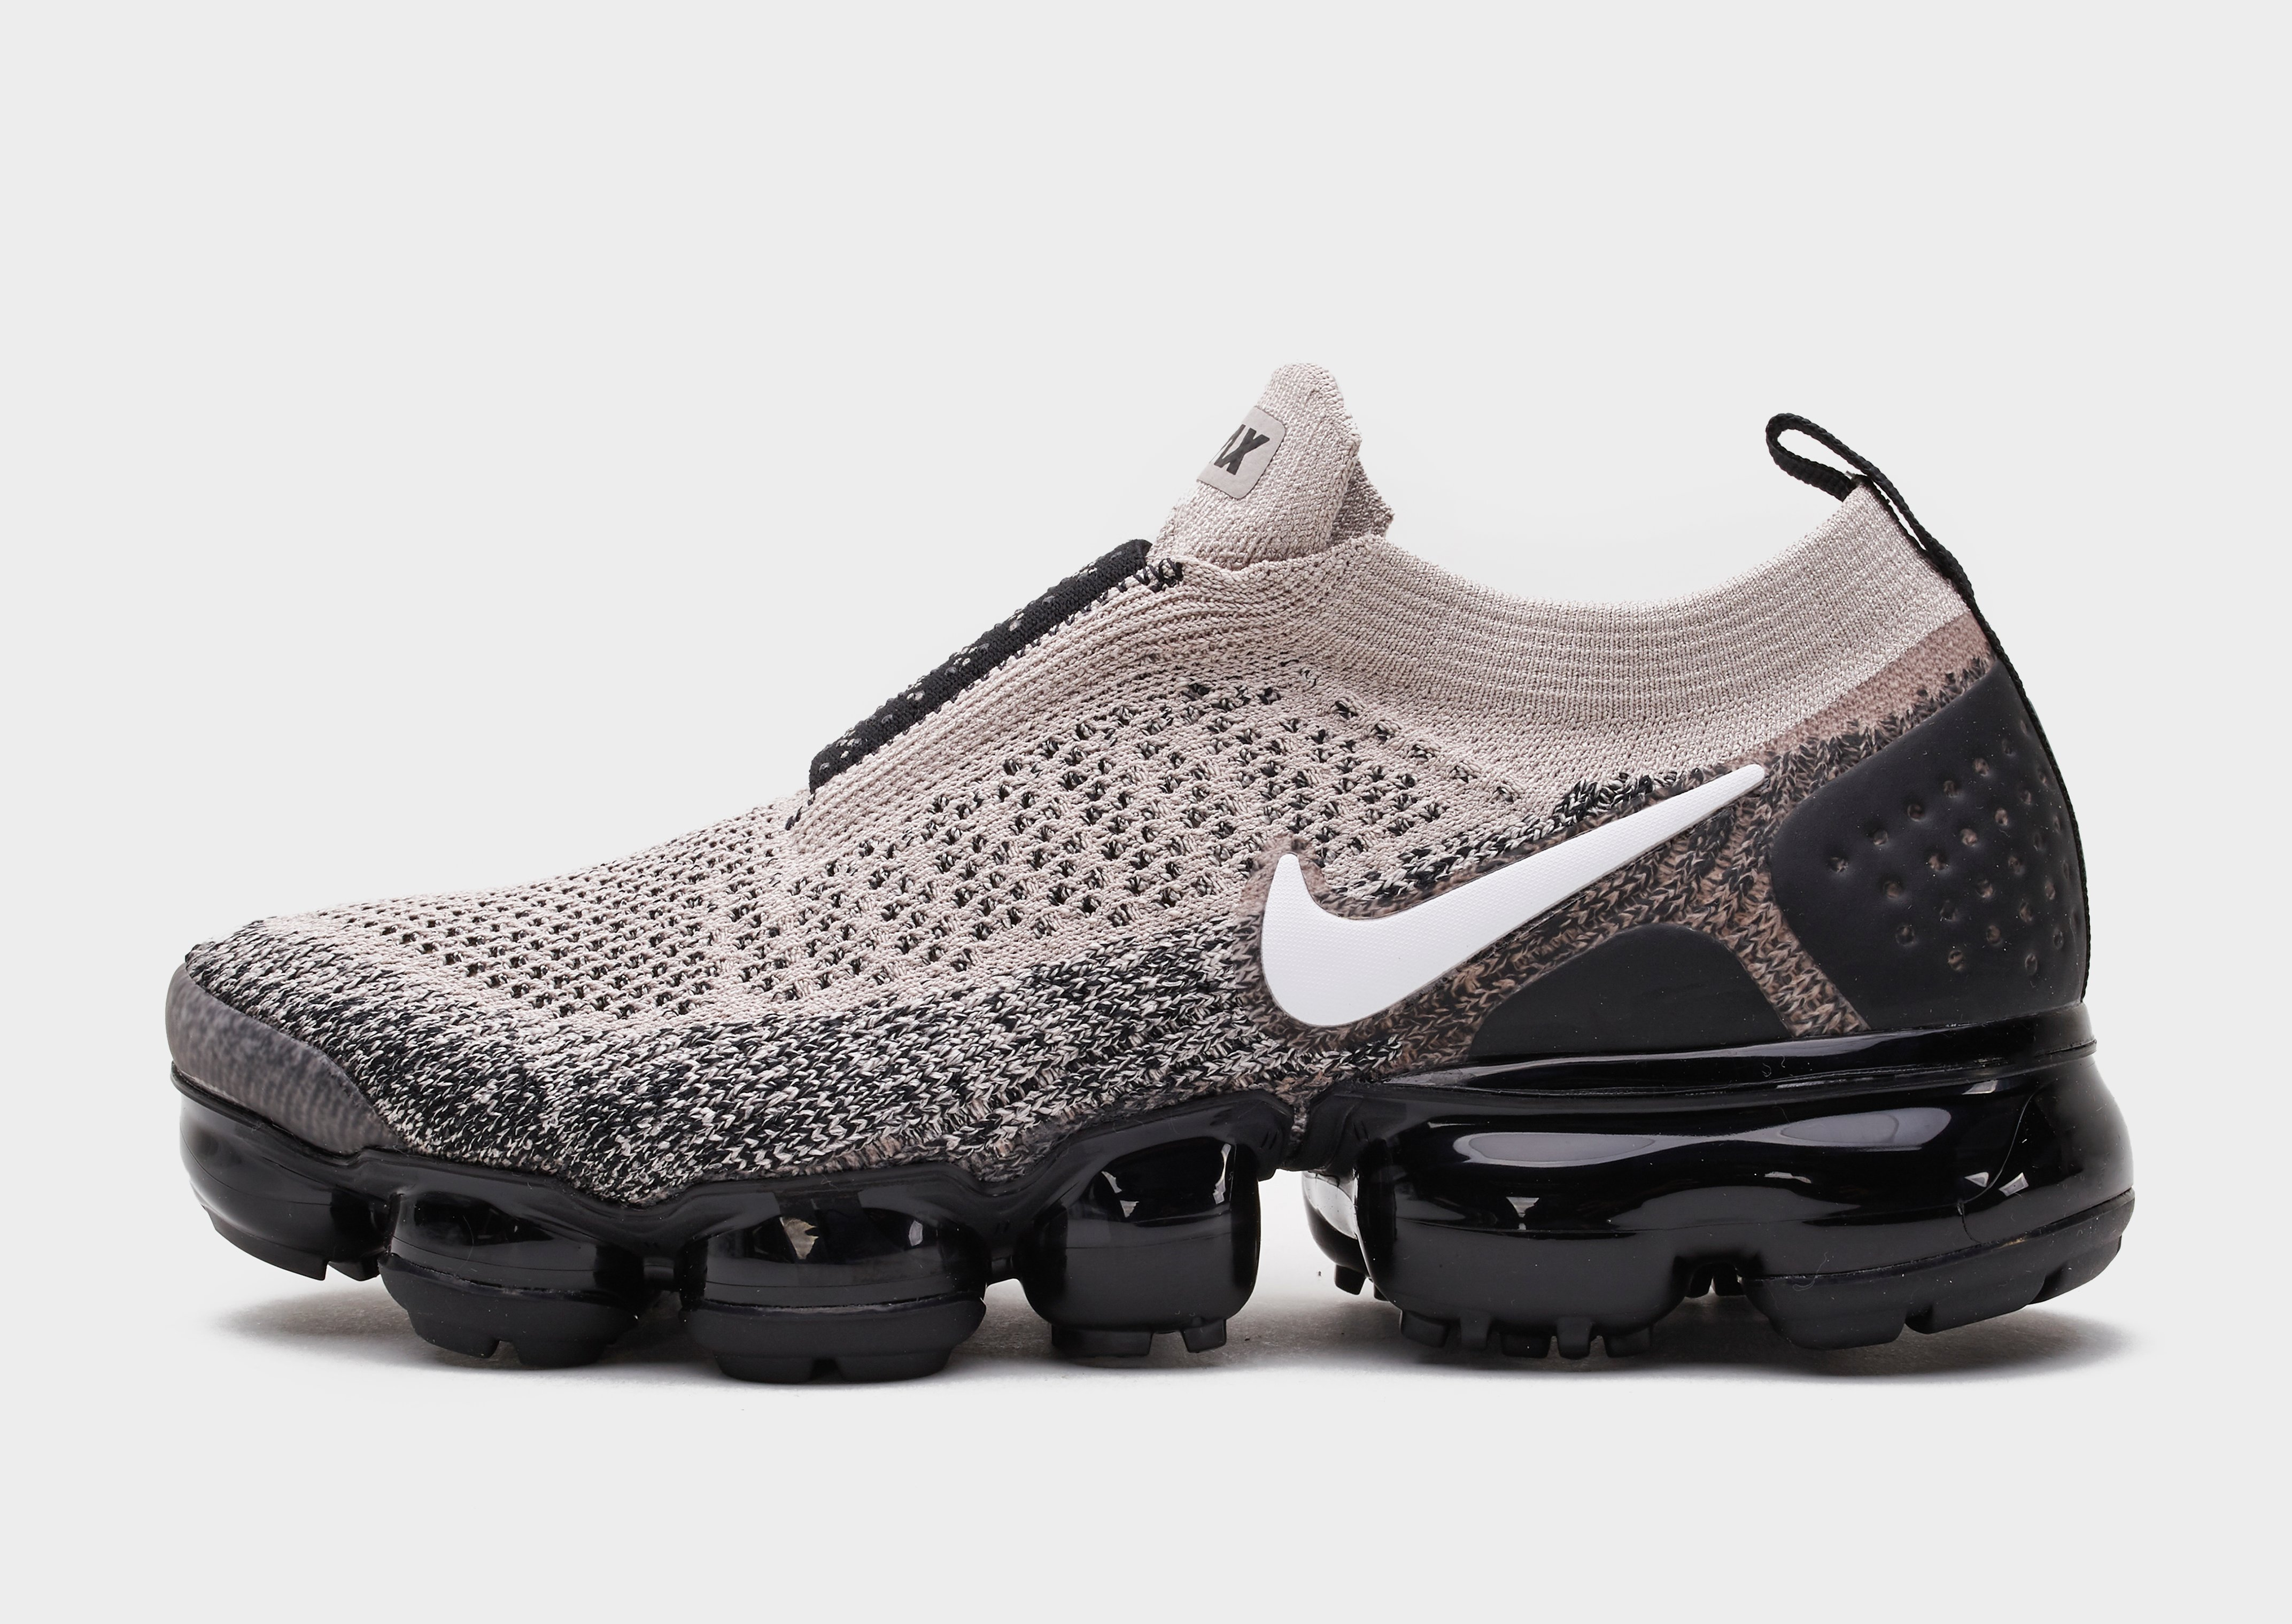 557bd4be41 NIKE Air VaporMax Flyknit MOC 2 | JD Sports